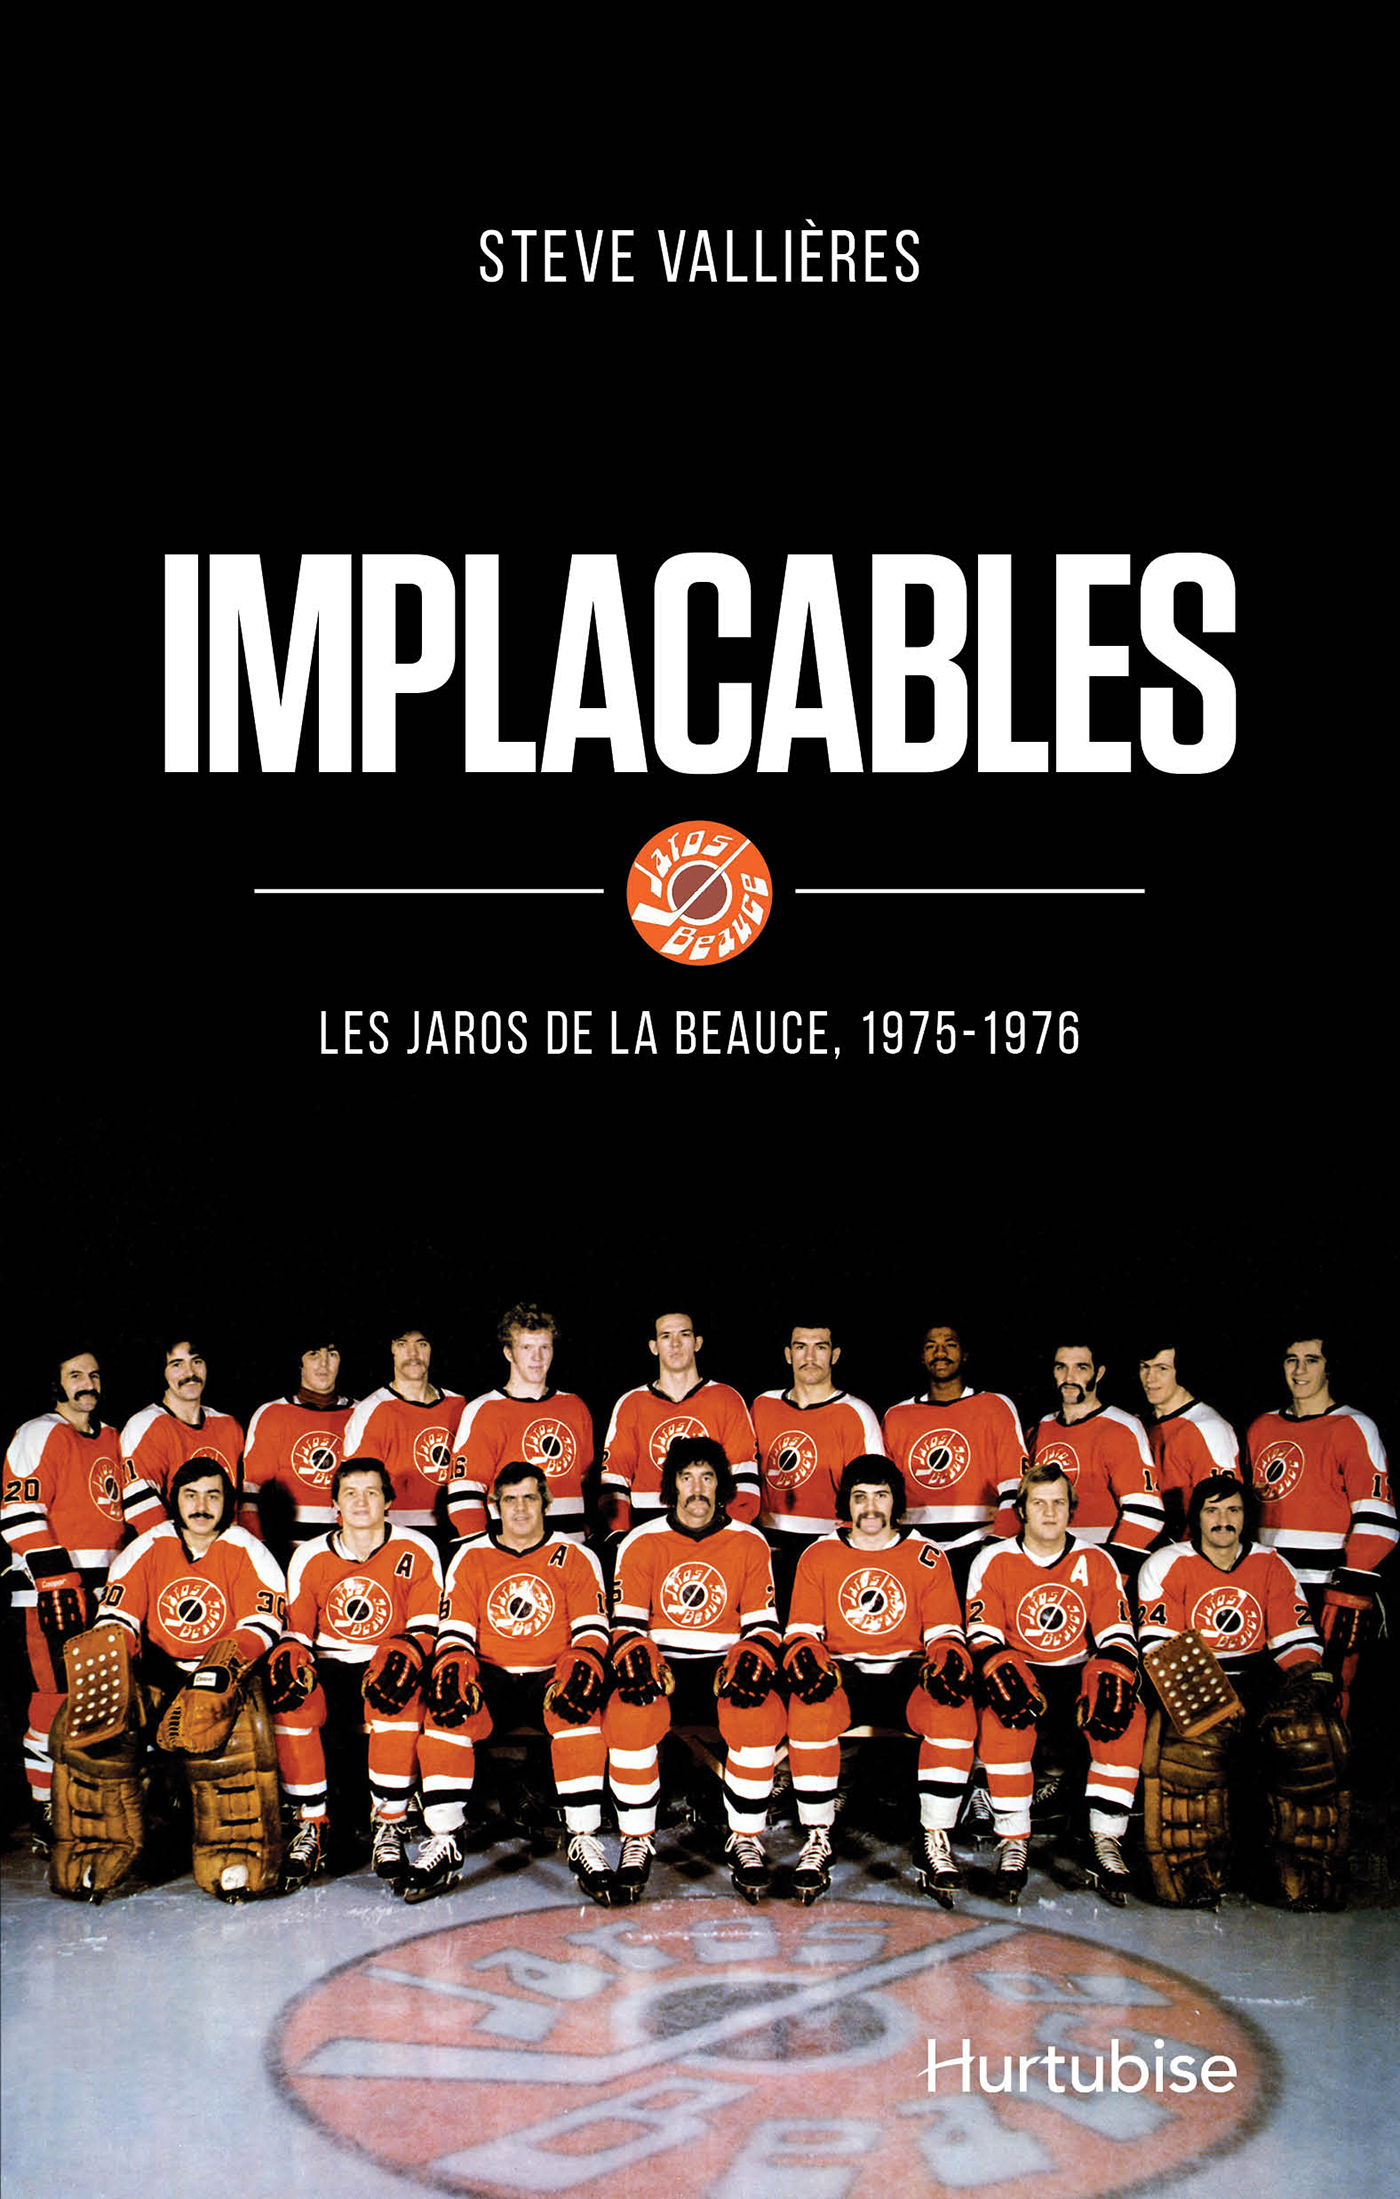 Implacables: Les Jaros de la Beauce (1975-1976)